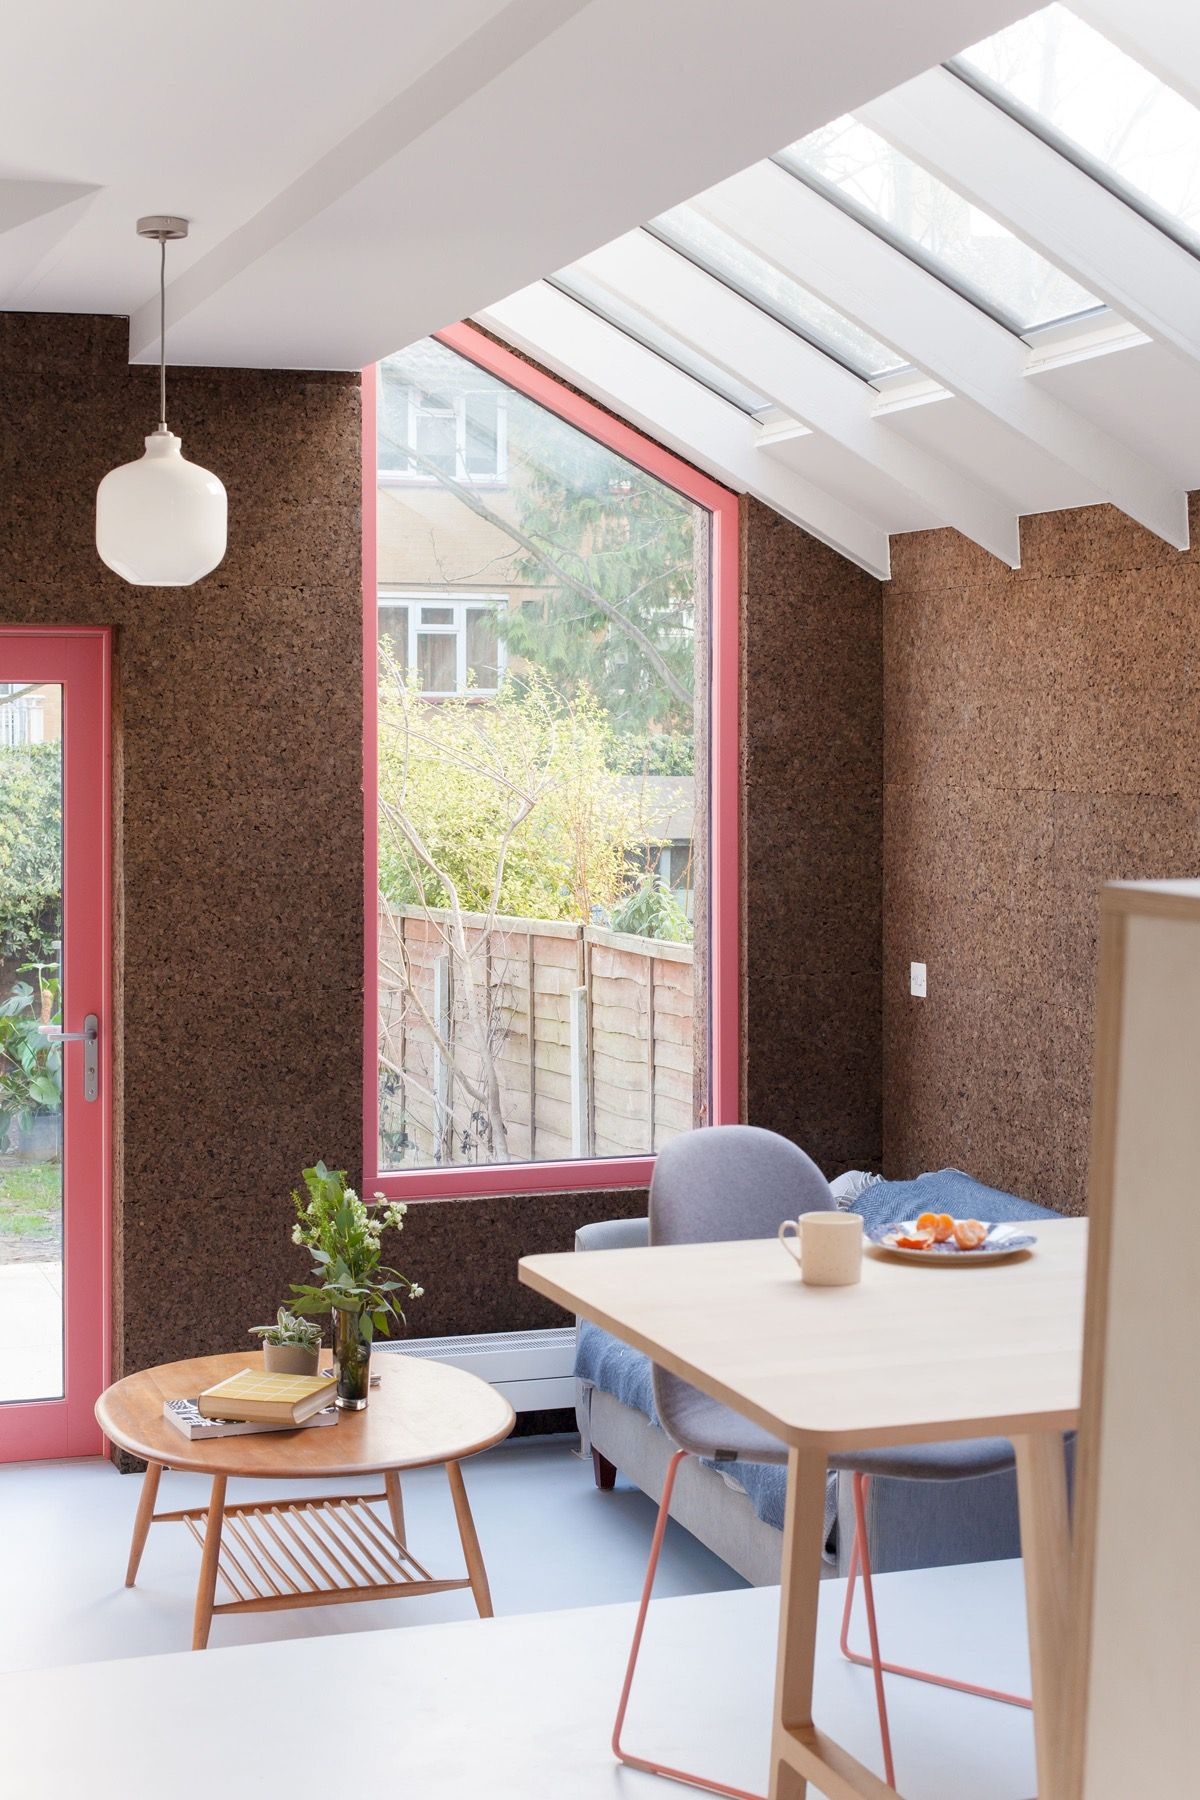 nimtim architects used naturally stained cork for extension of Victorian terrace house in London - Apartmentlovin'.jpeg